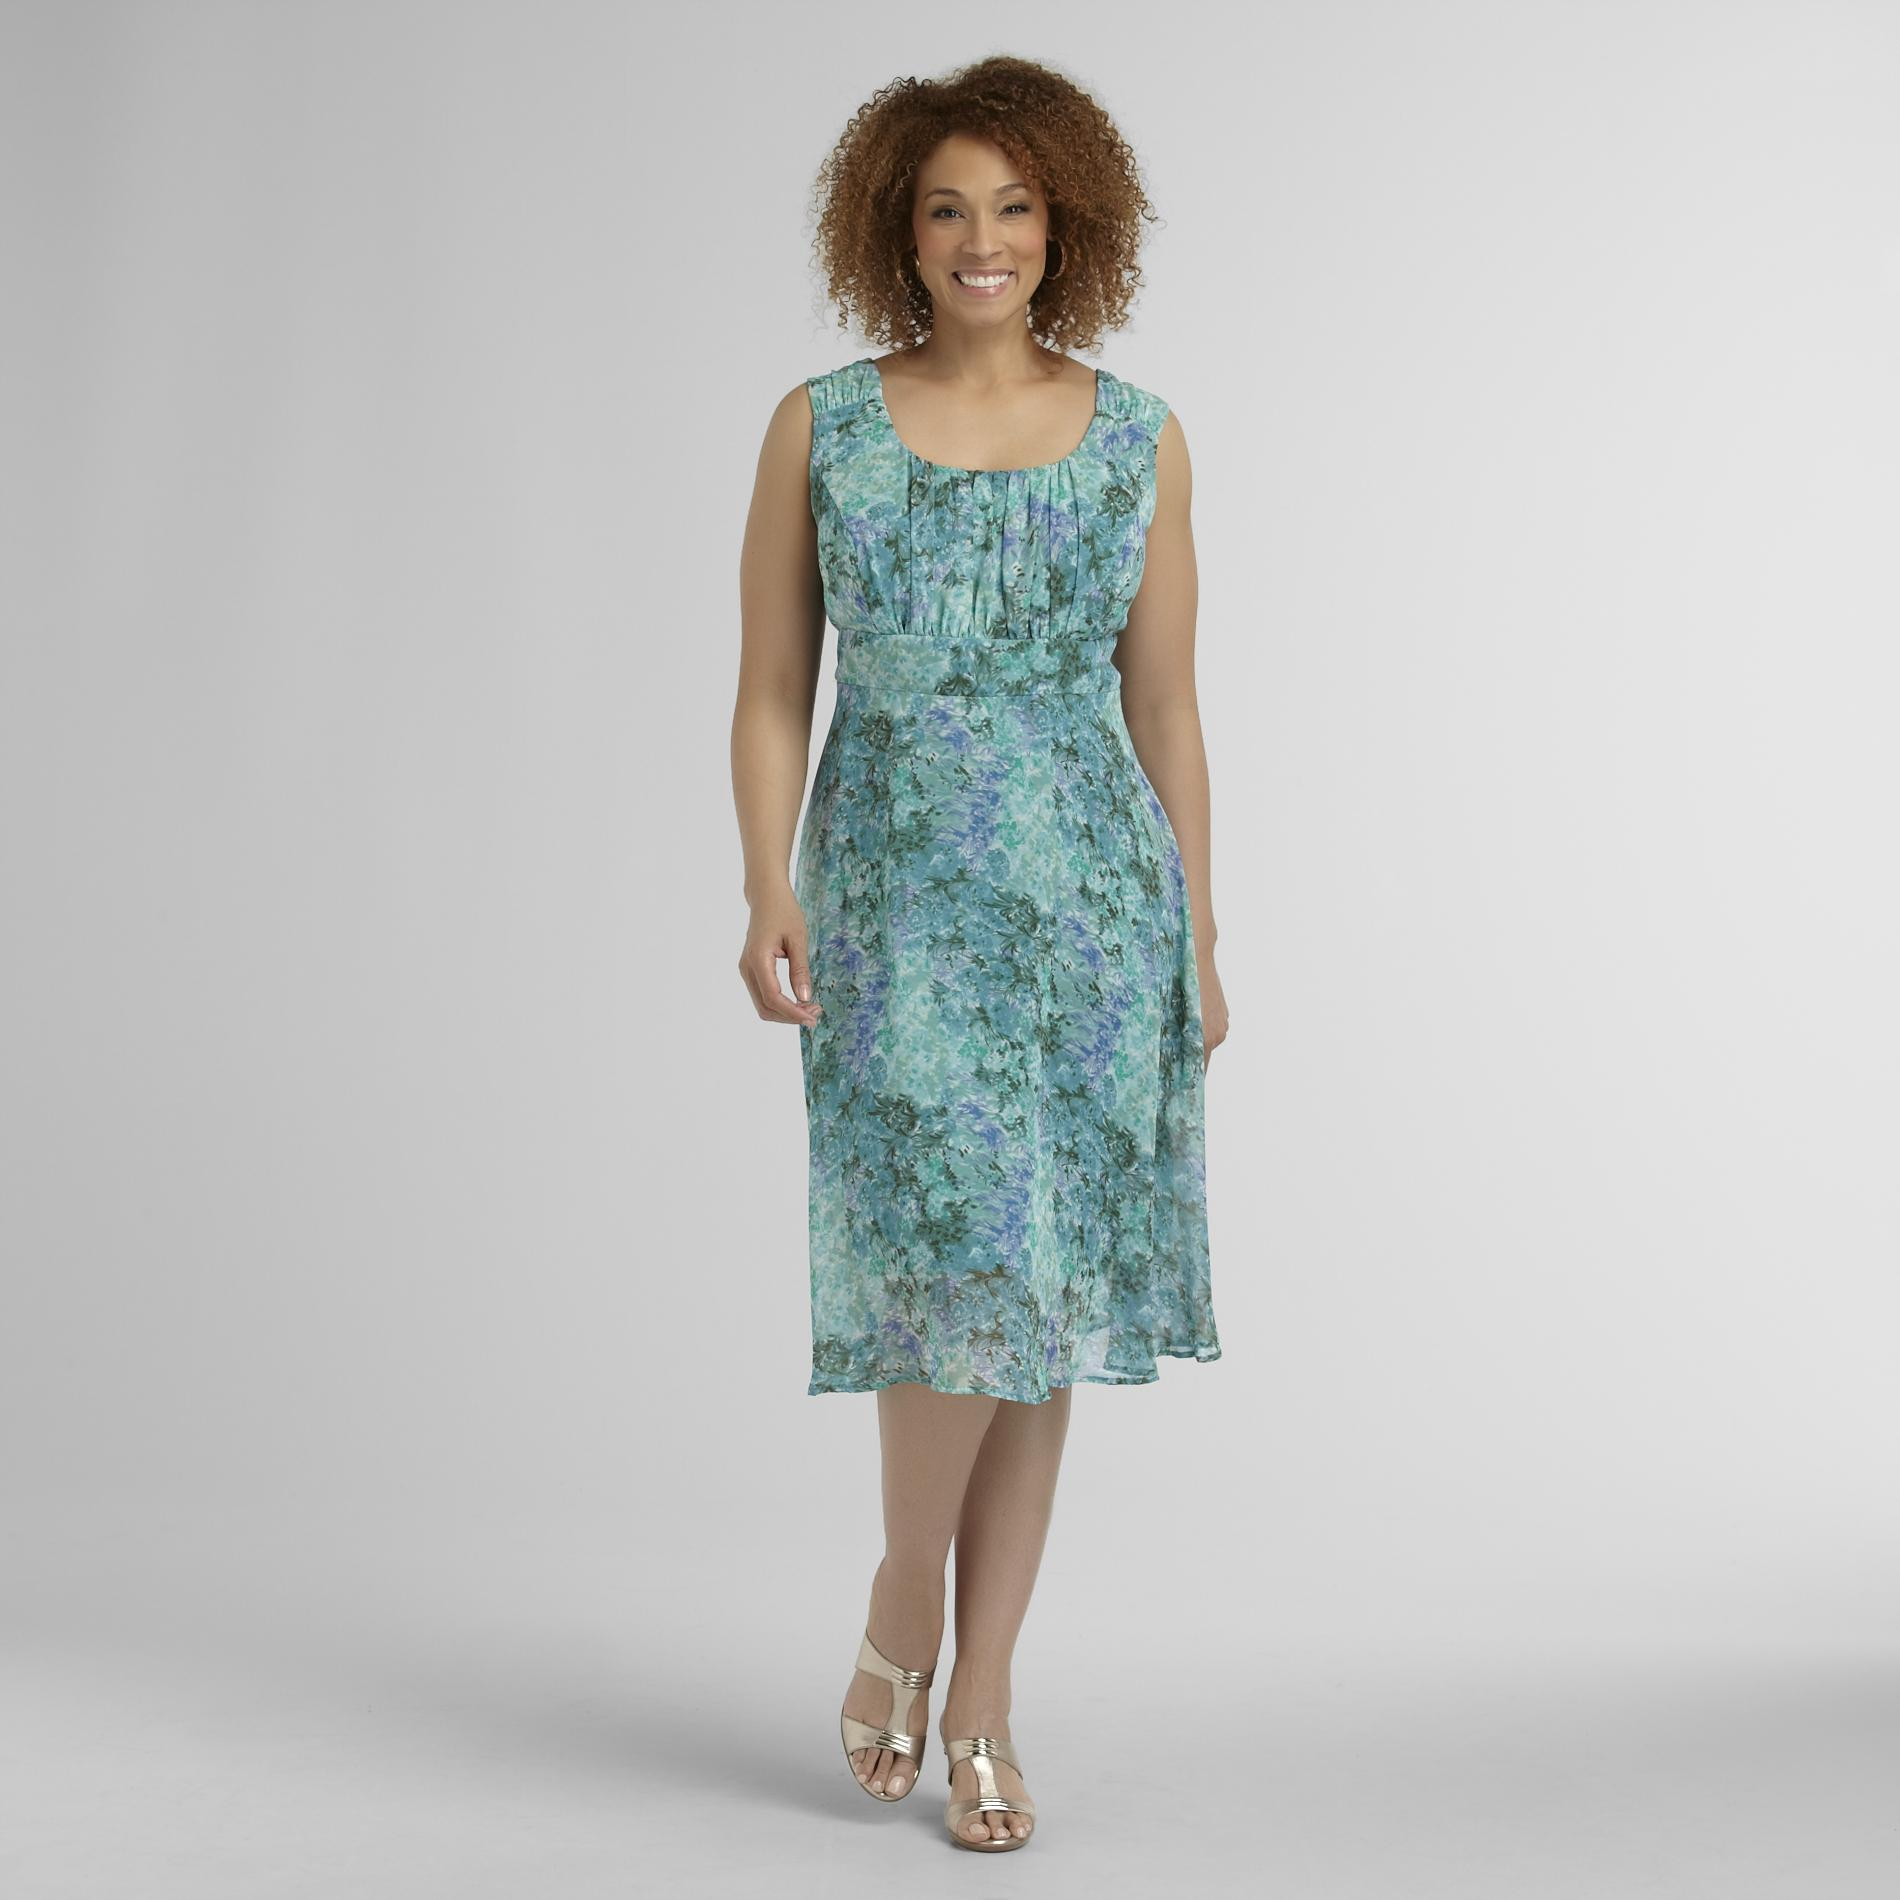 Connected Apparel Women's Plus Sleeveless Dress - Floral at Sears.com